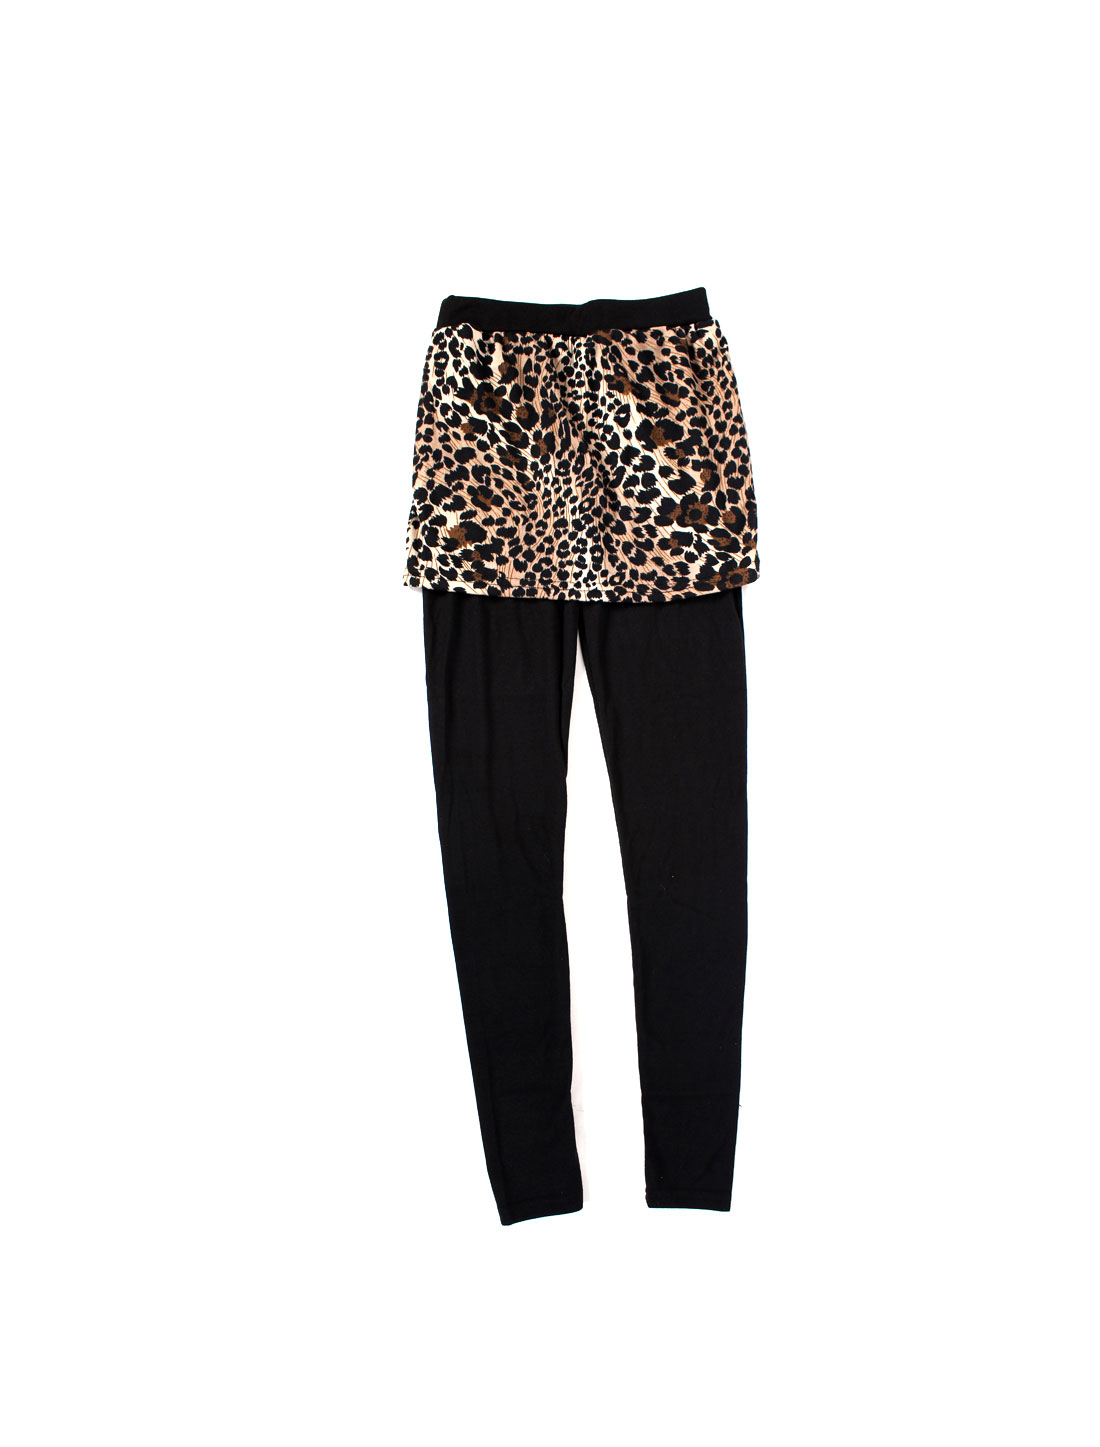 Women Elastic Waist Spliced Leggings Leopard Pattern Pantskirt Black /XS (US 0)